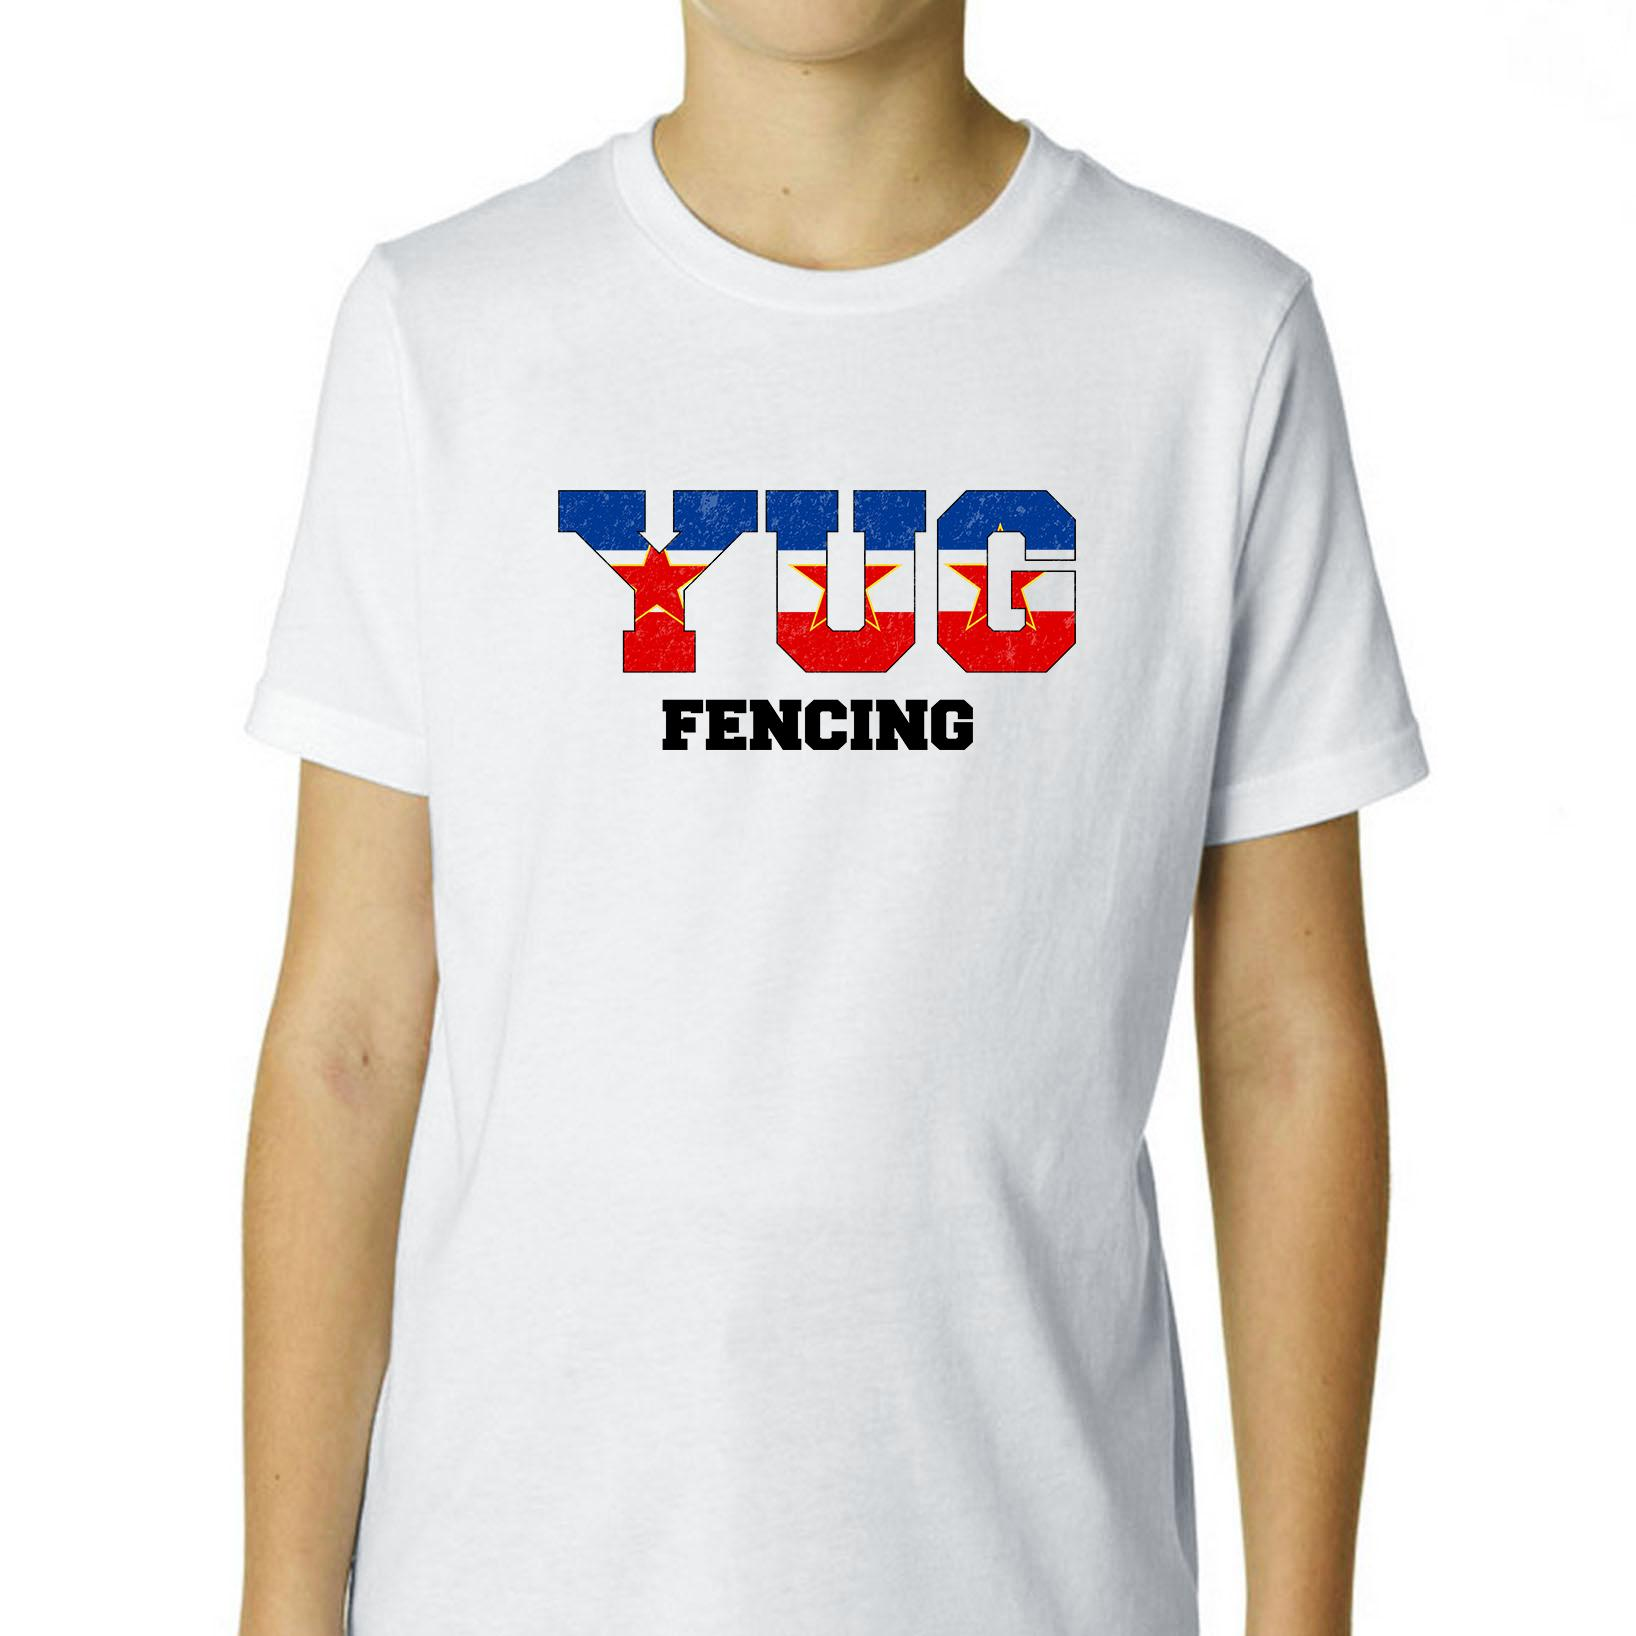 Yugoslavia Fencing - Olympic Games - Rio - Flag Boy's Cotton Youth T-Shirt